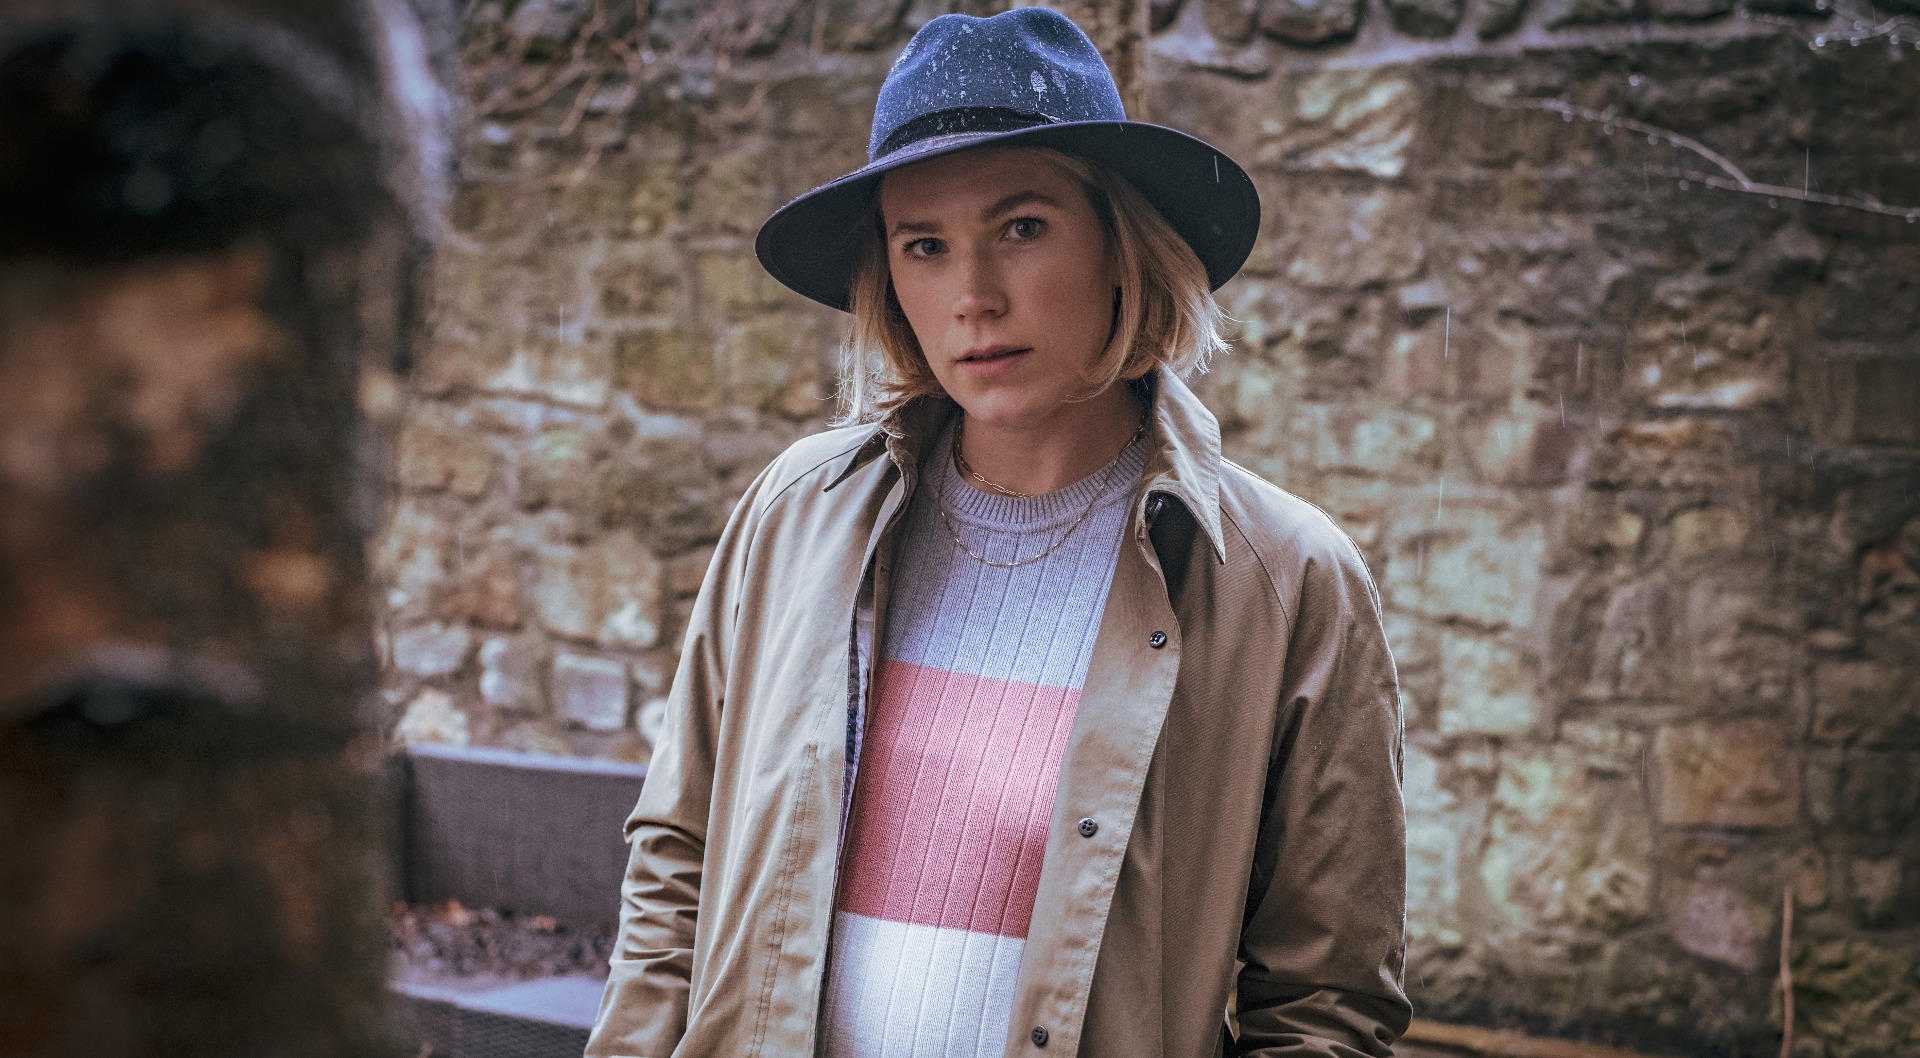 Sarah styles the Barbour SS21 Women's Tartan Collection